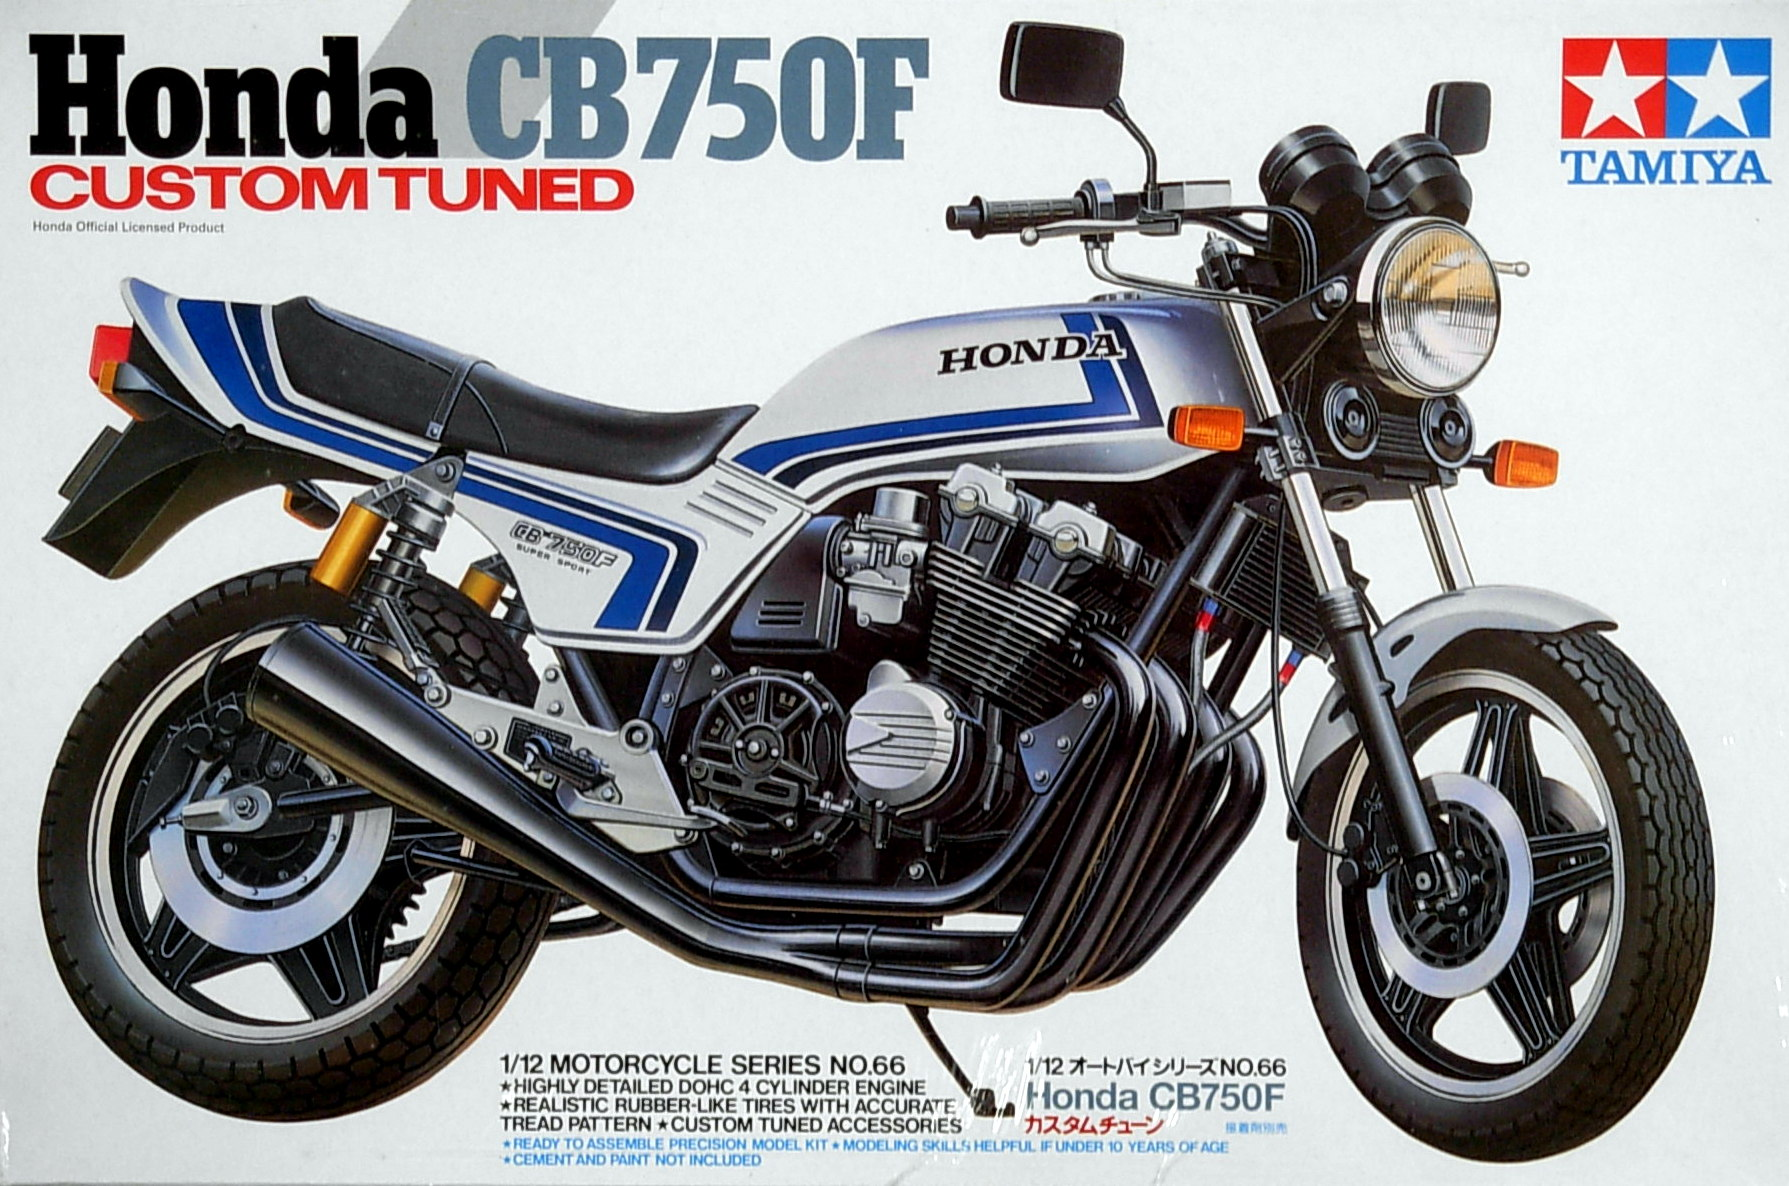 Honda CB 750 Custom Tuned